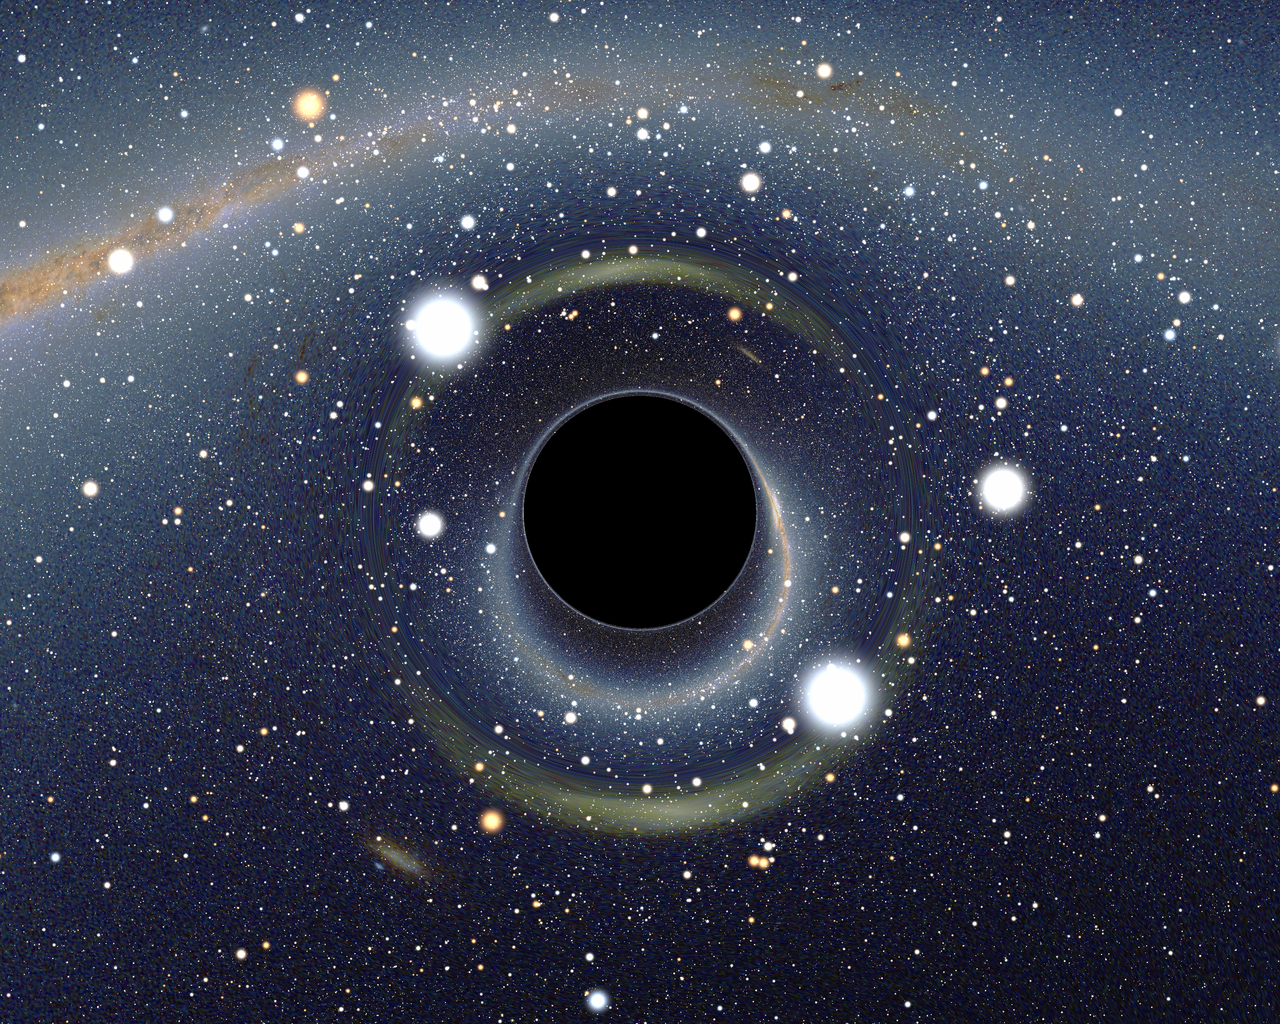 Teleportation Through Black Holes May Be Possible